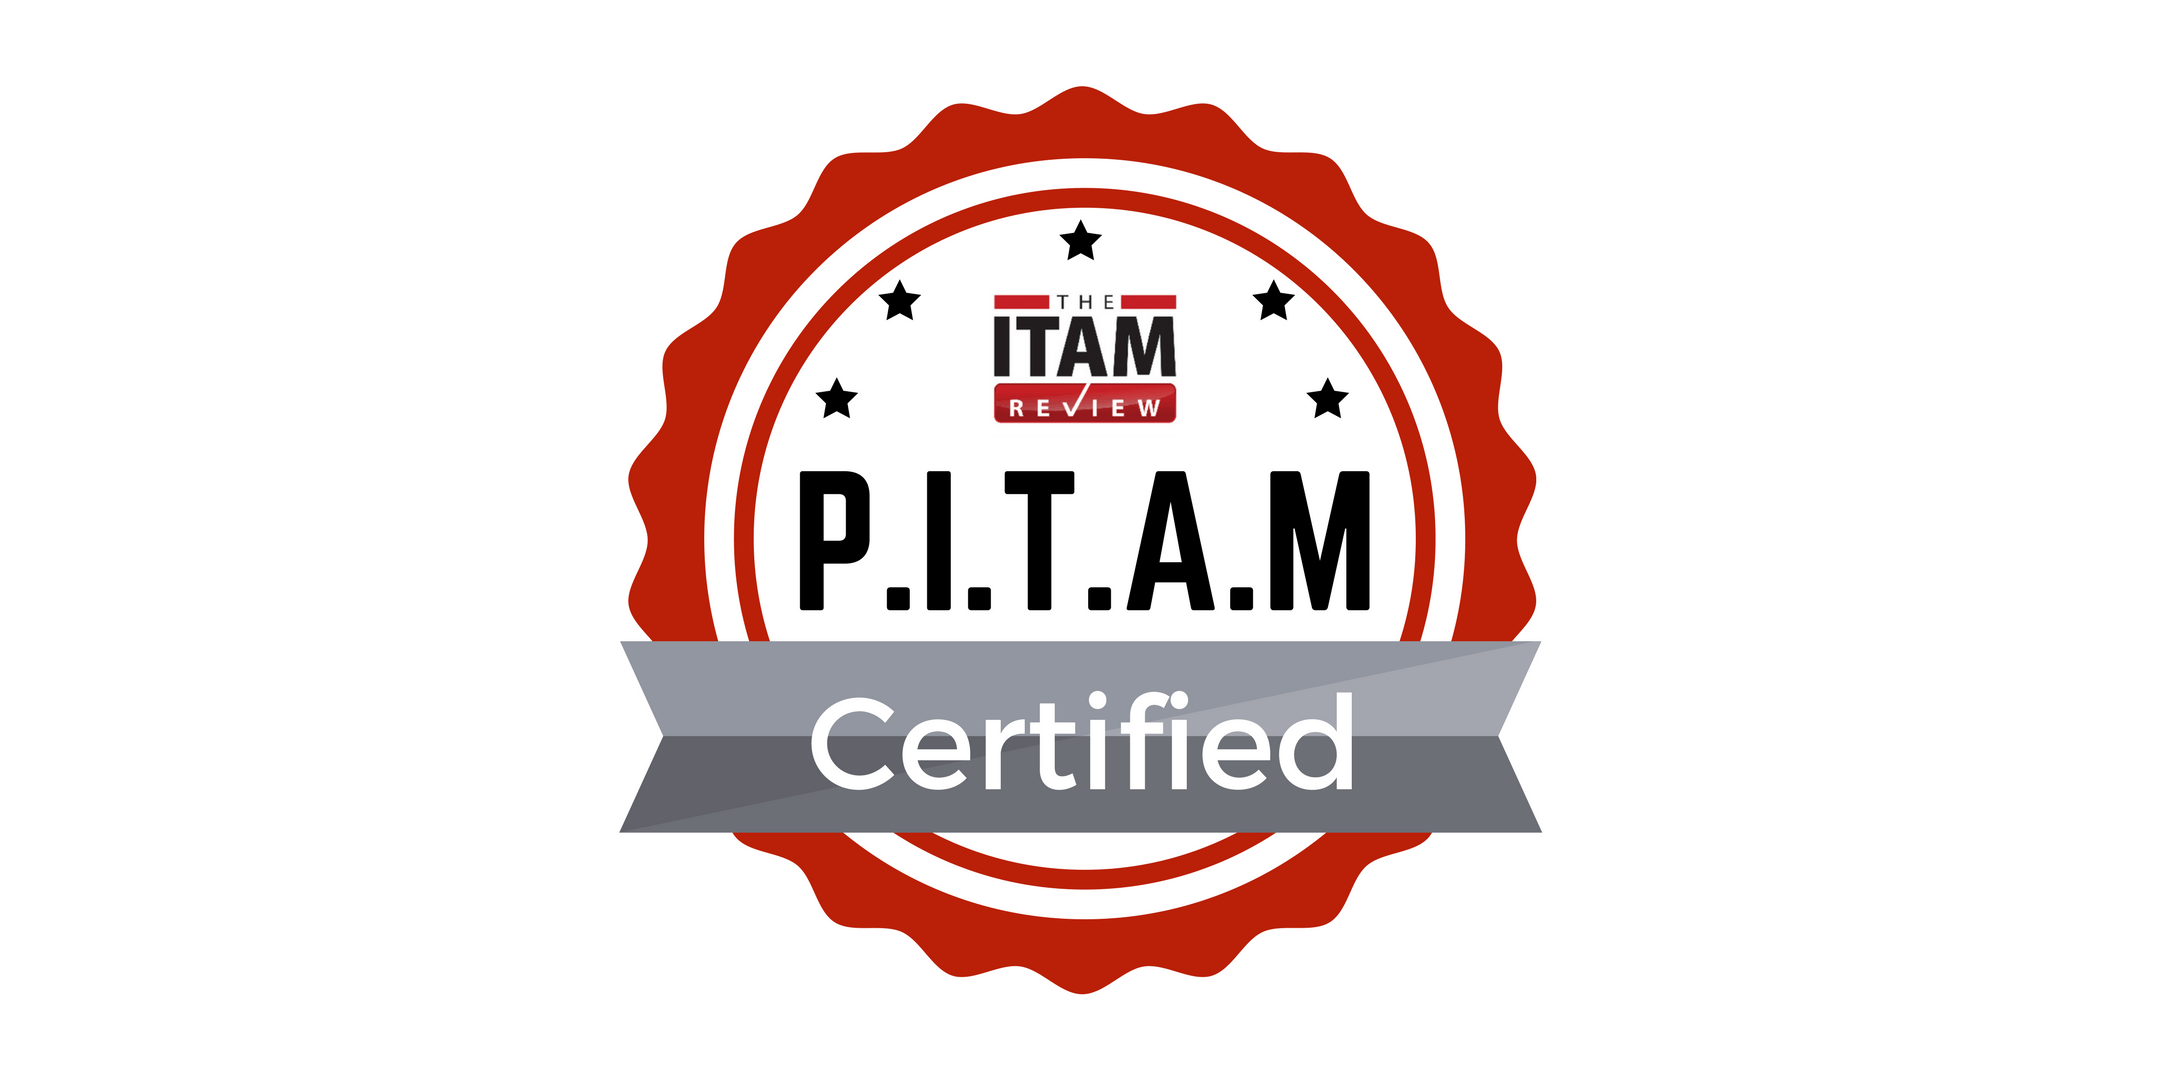 2019 Uk Pitam In Person Training Certification Course April 29